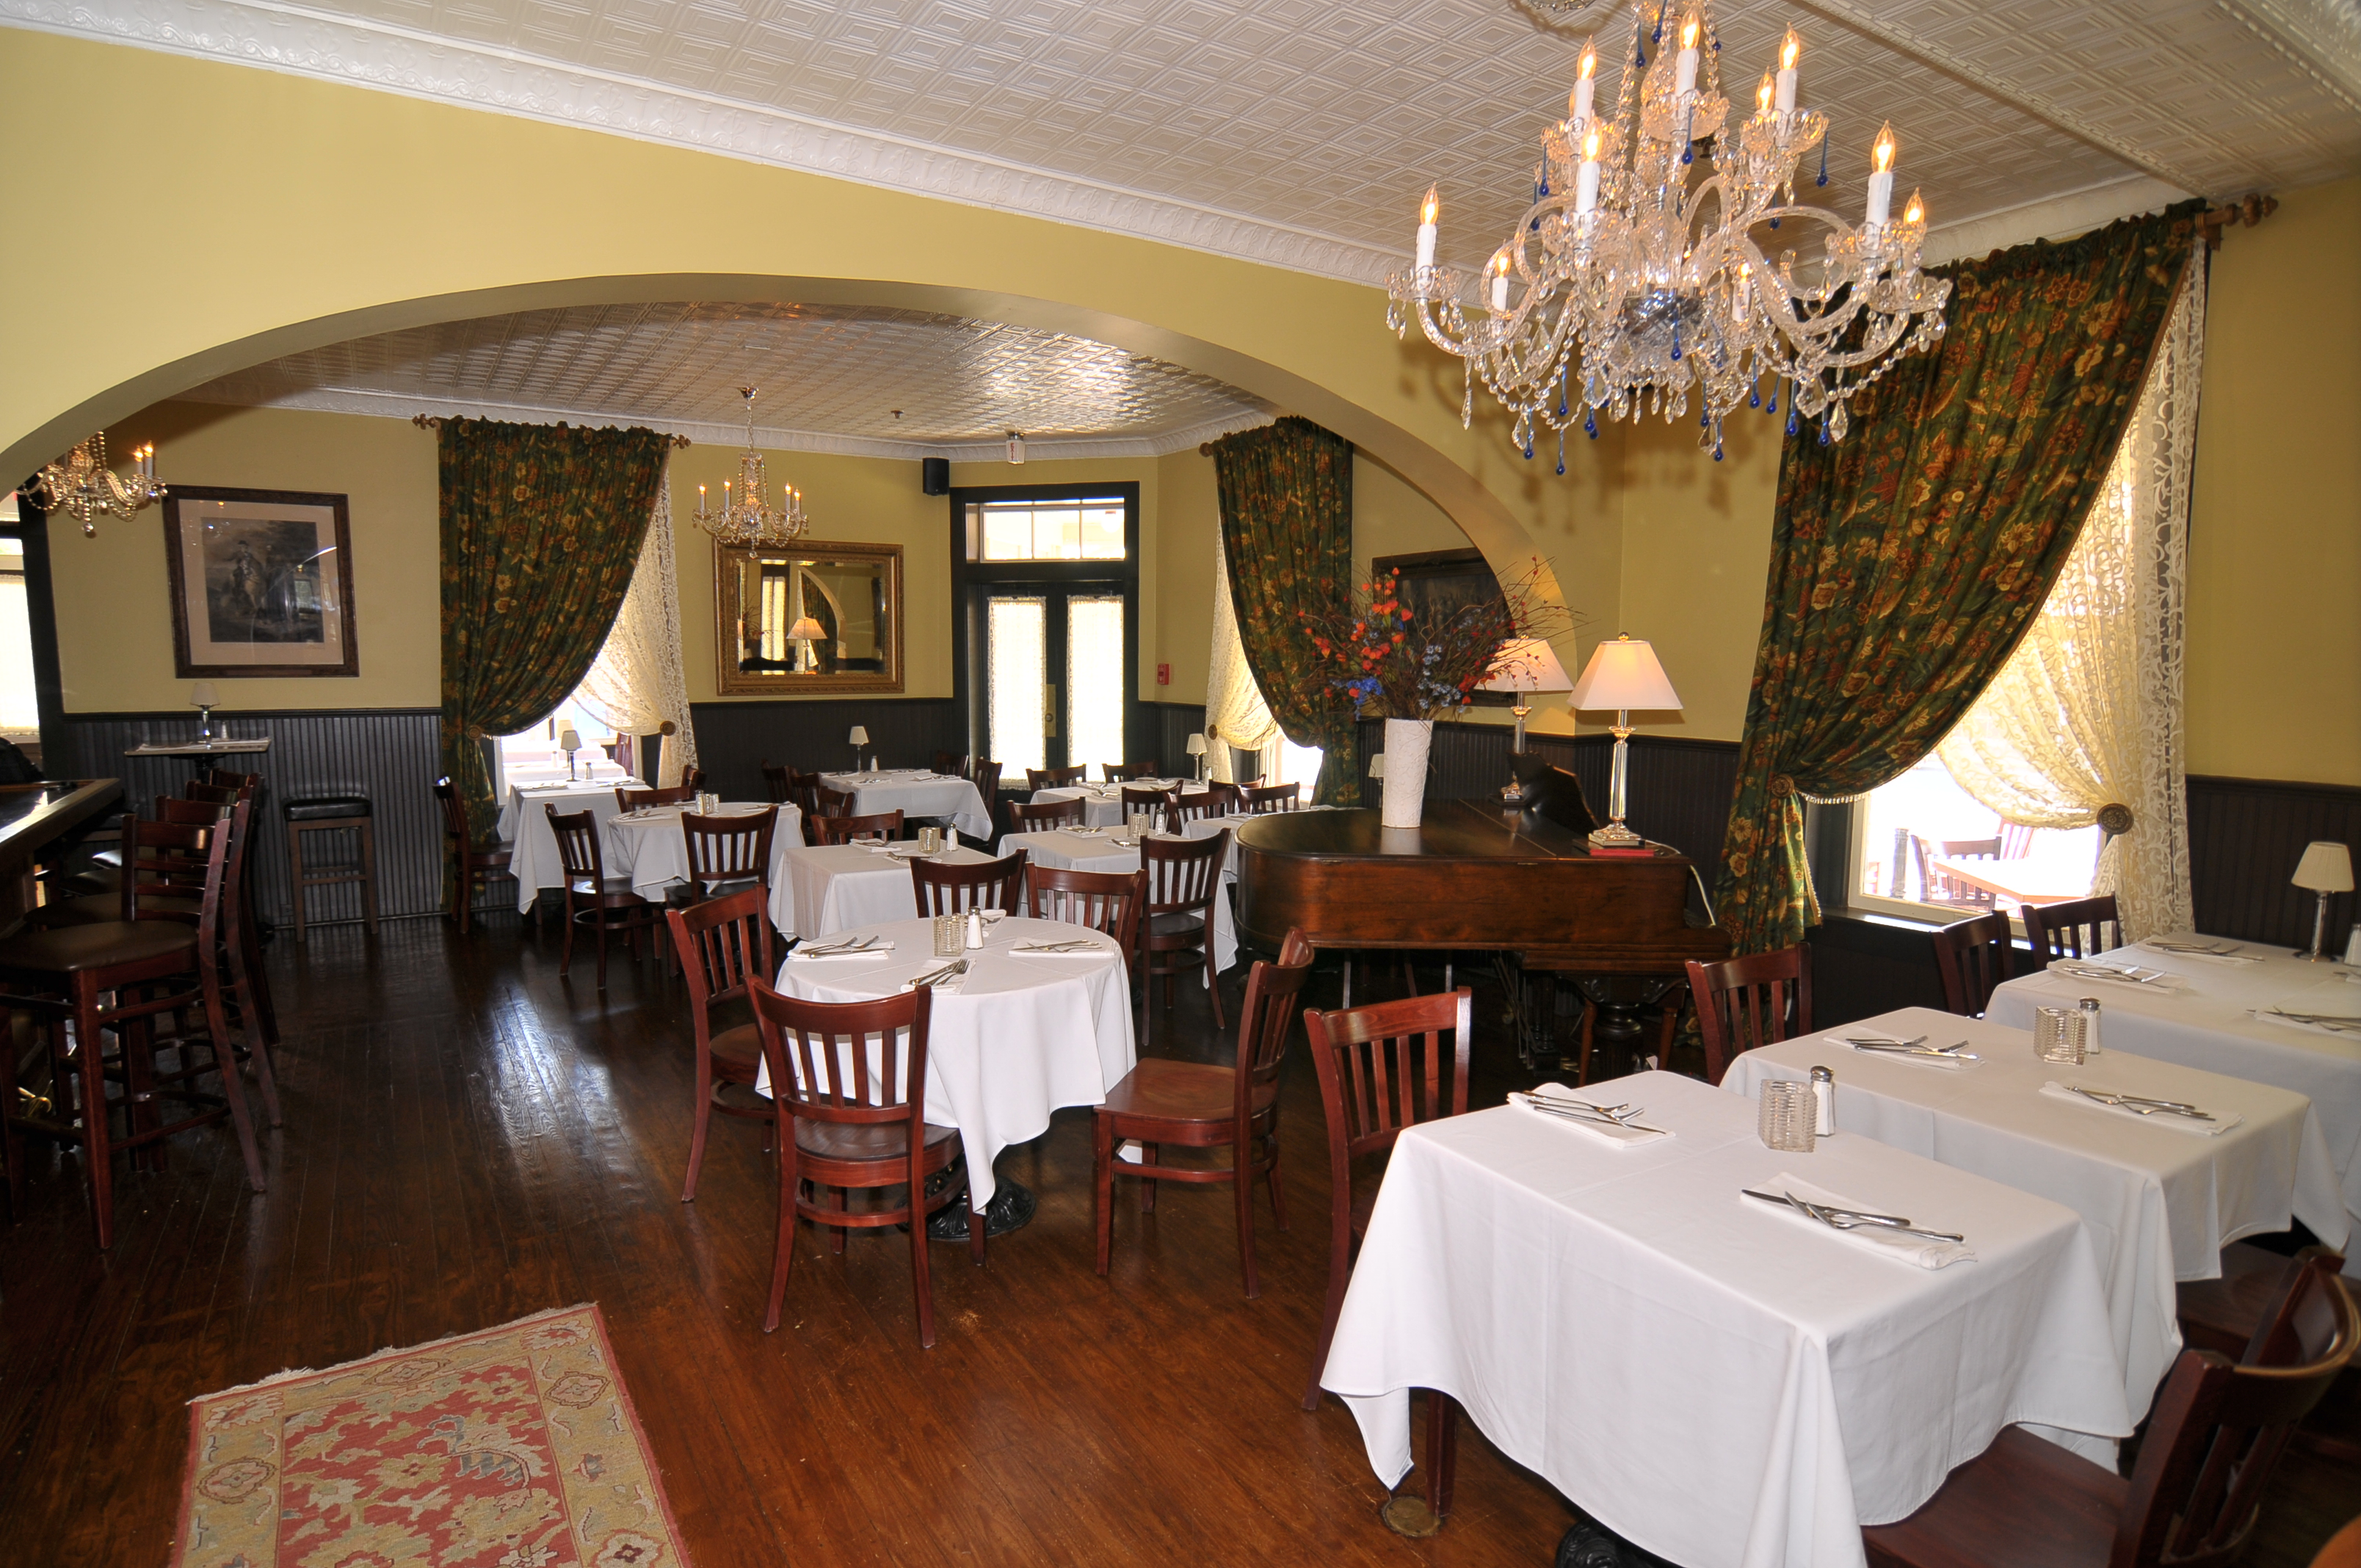 hotel restaurant dining room with tables and chairs